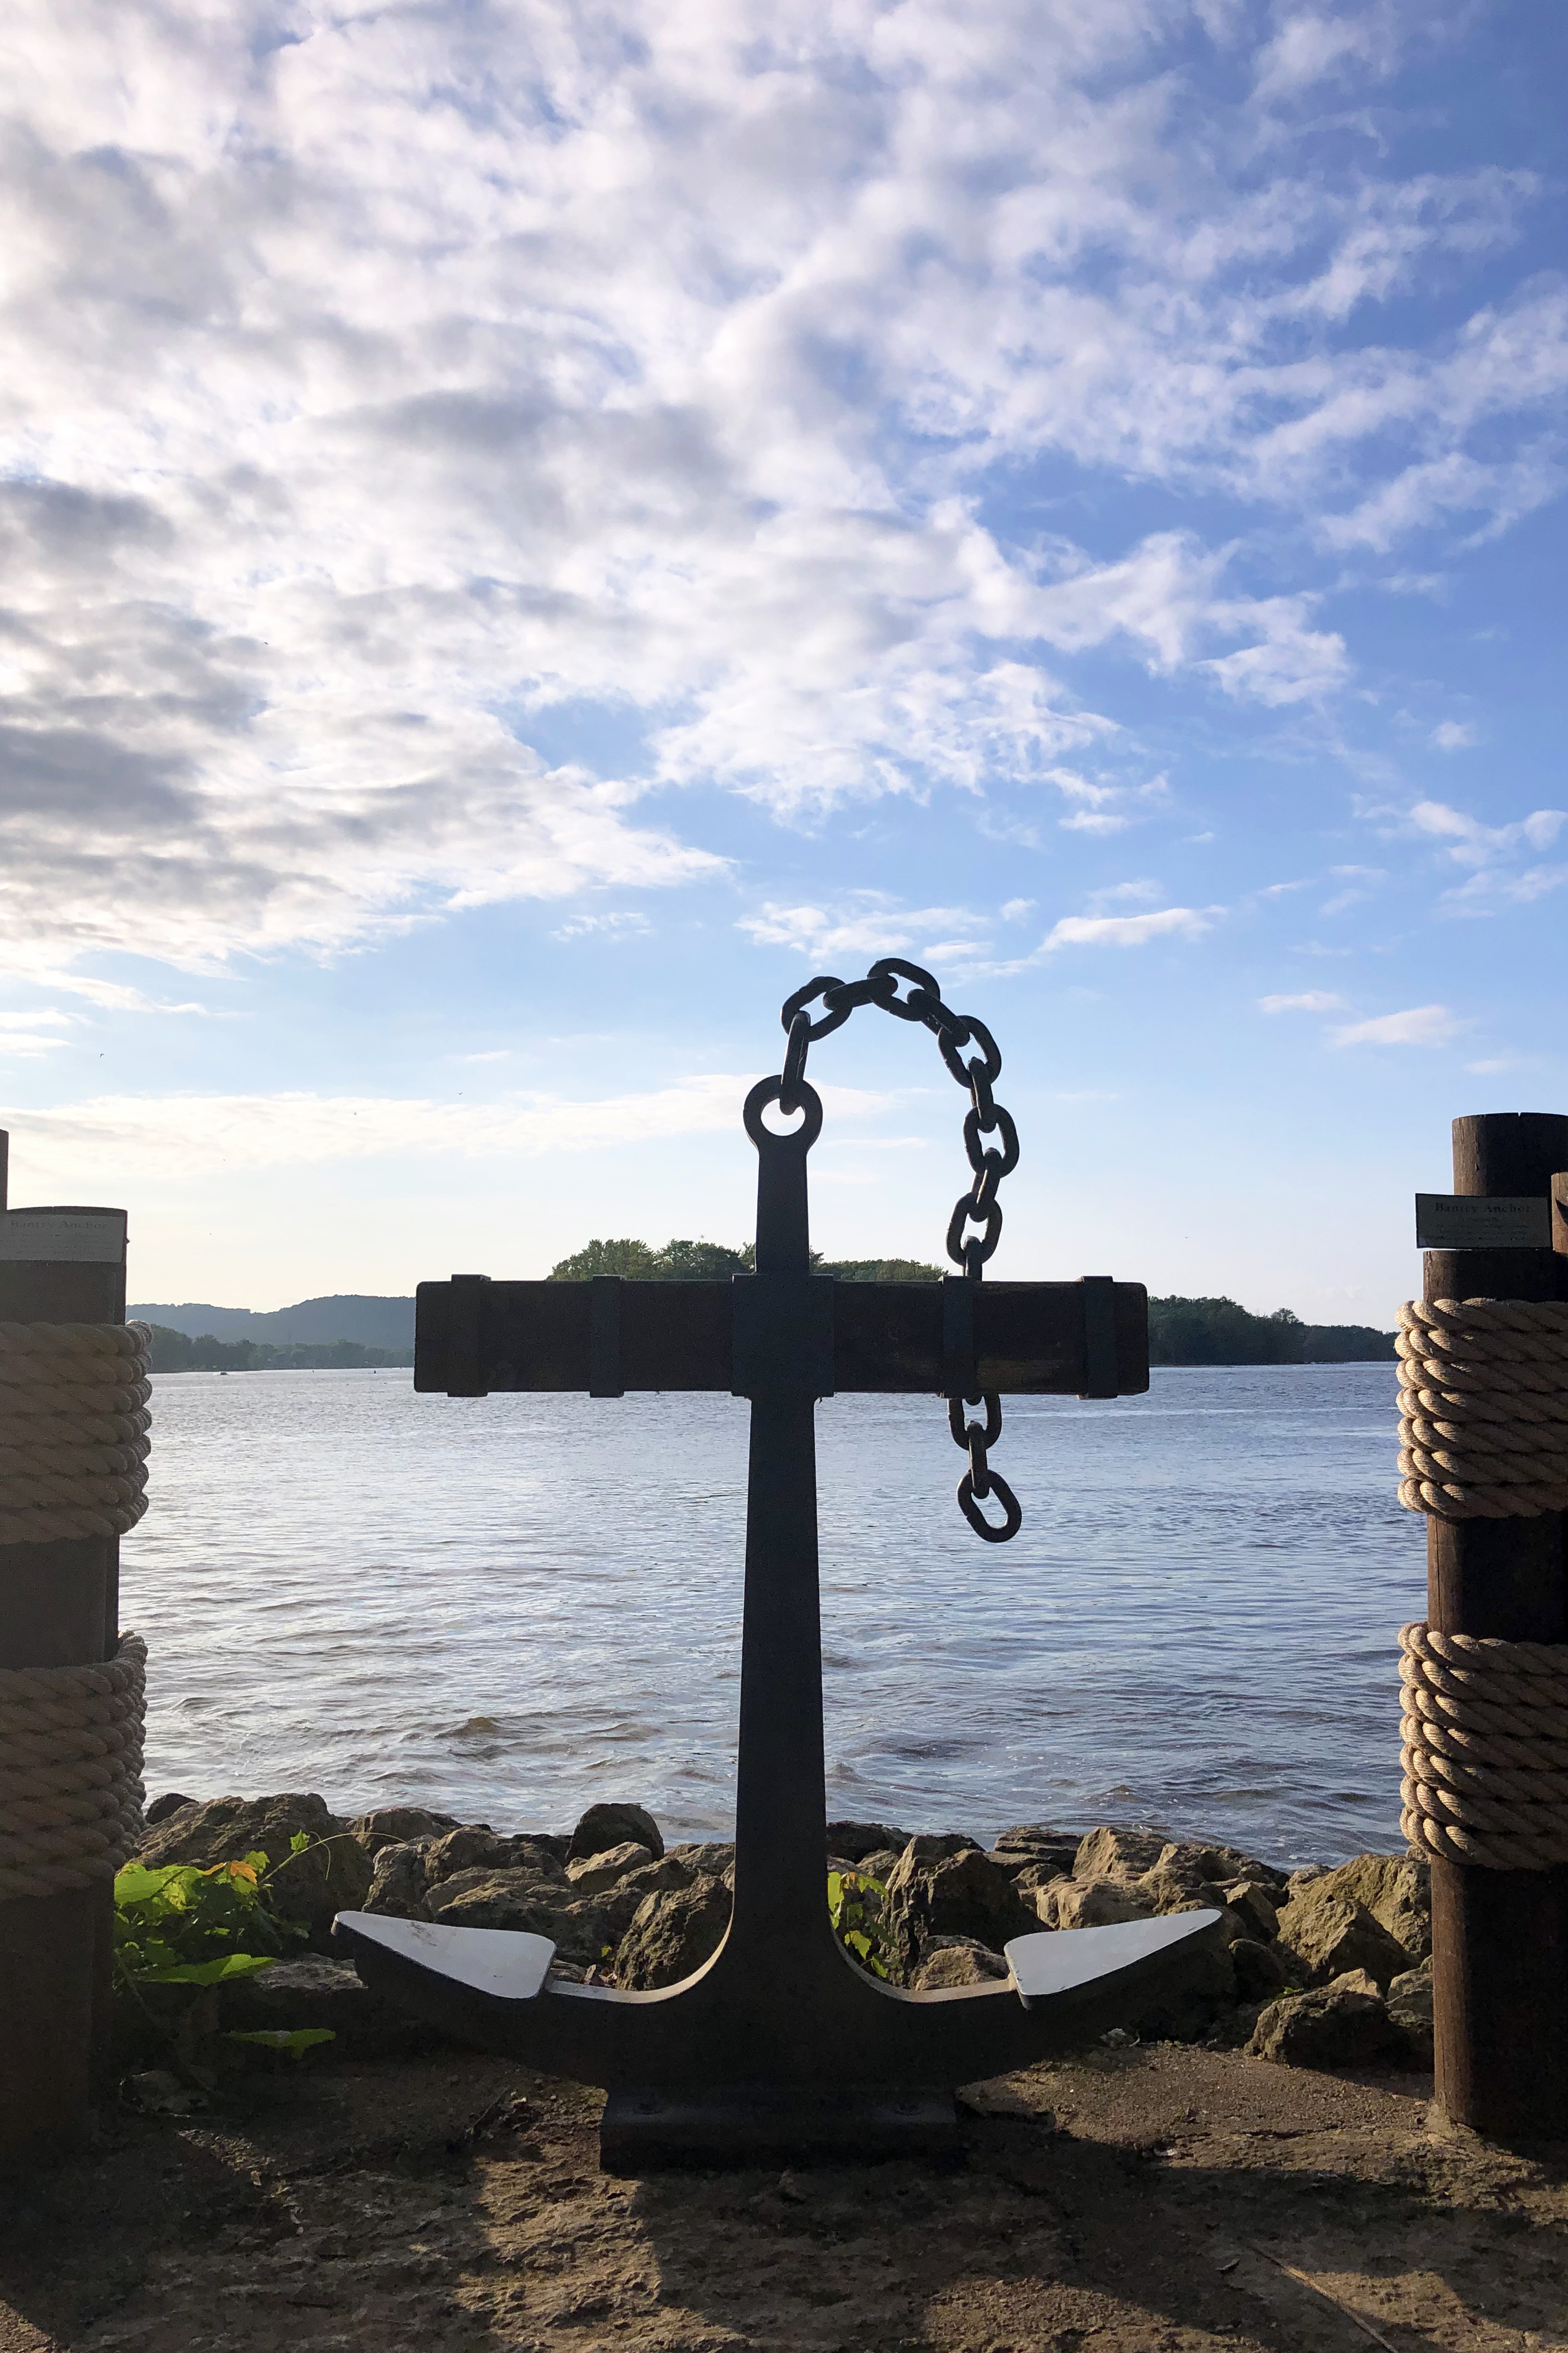 An Anchor between two wooden posts with the Mississippi River in the background